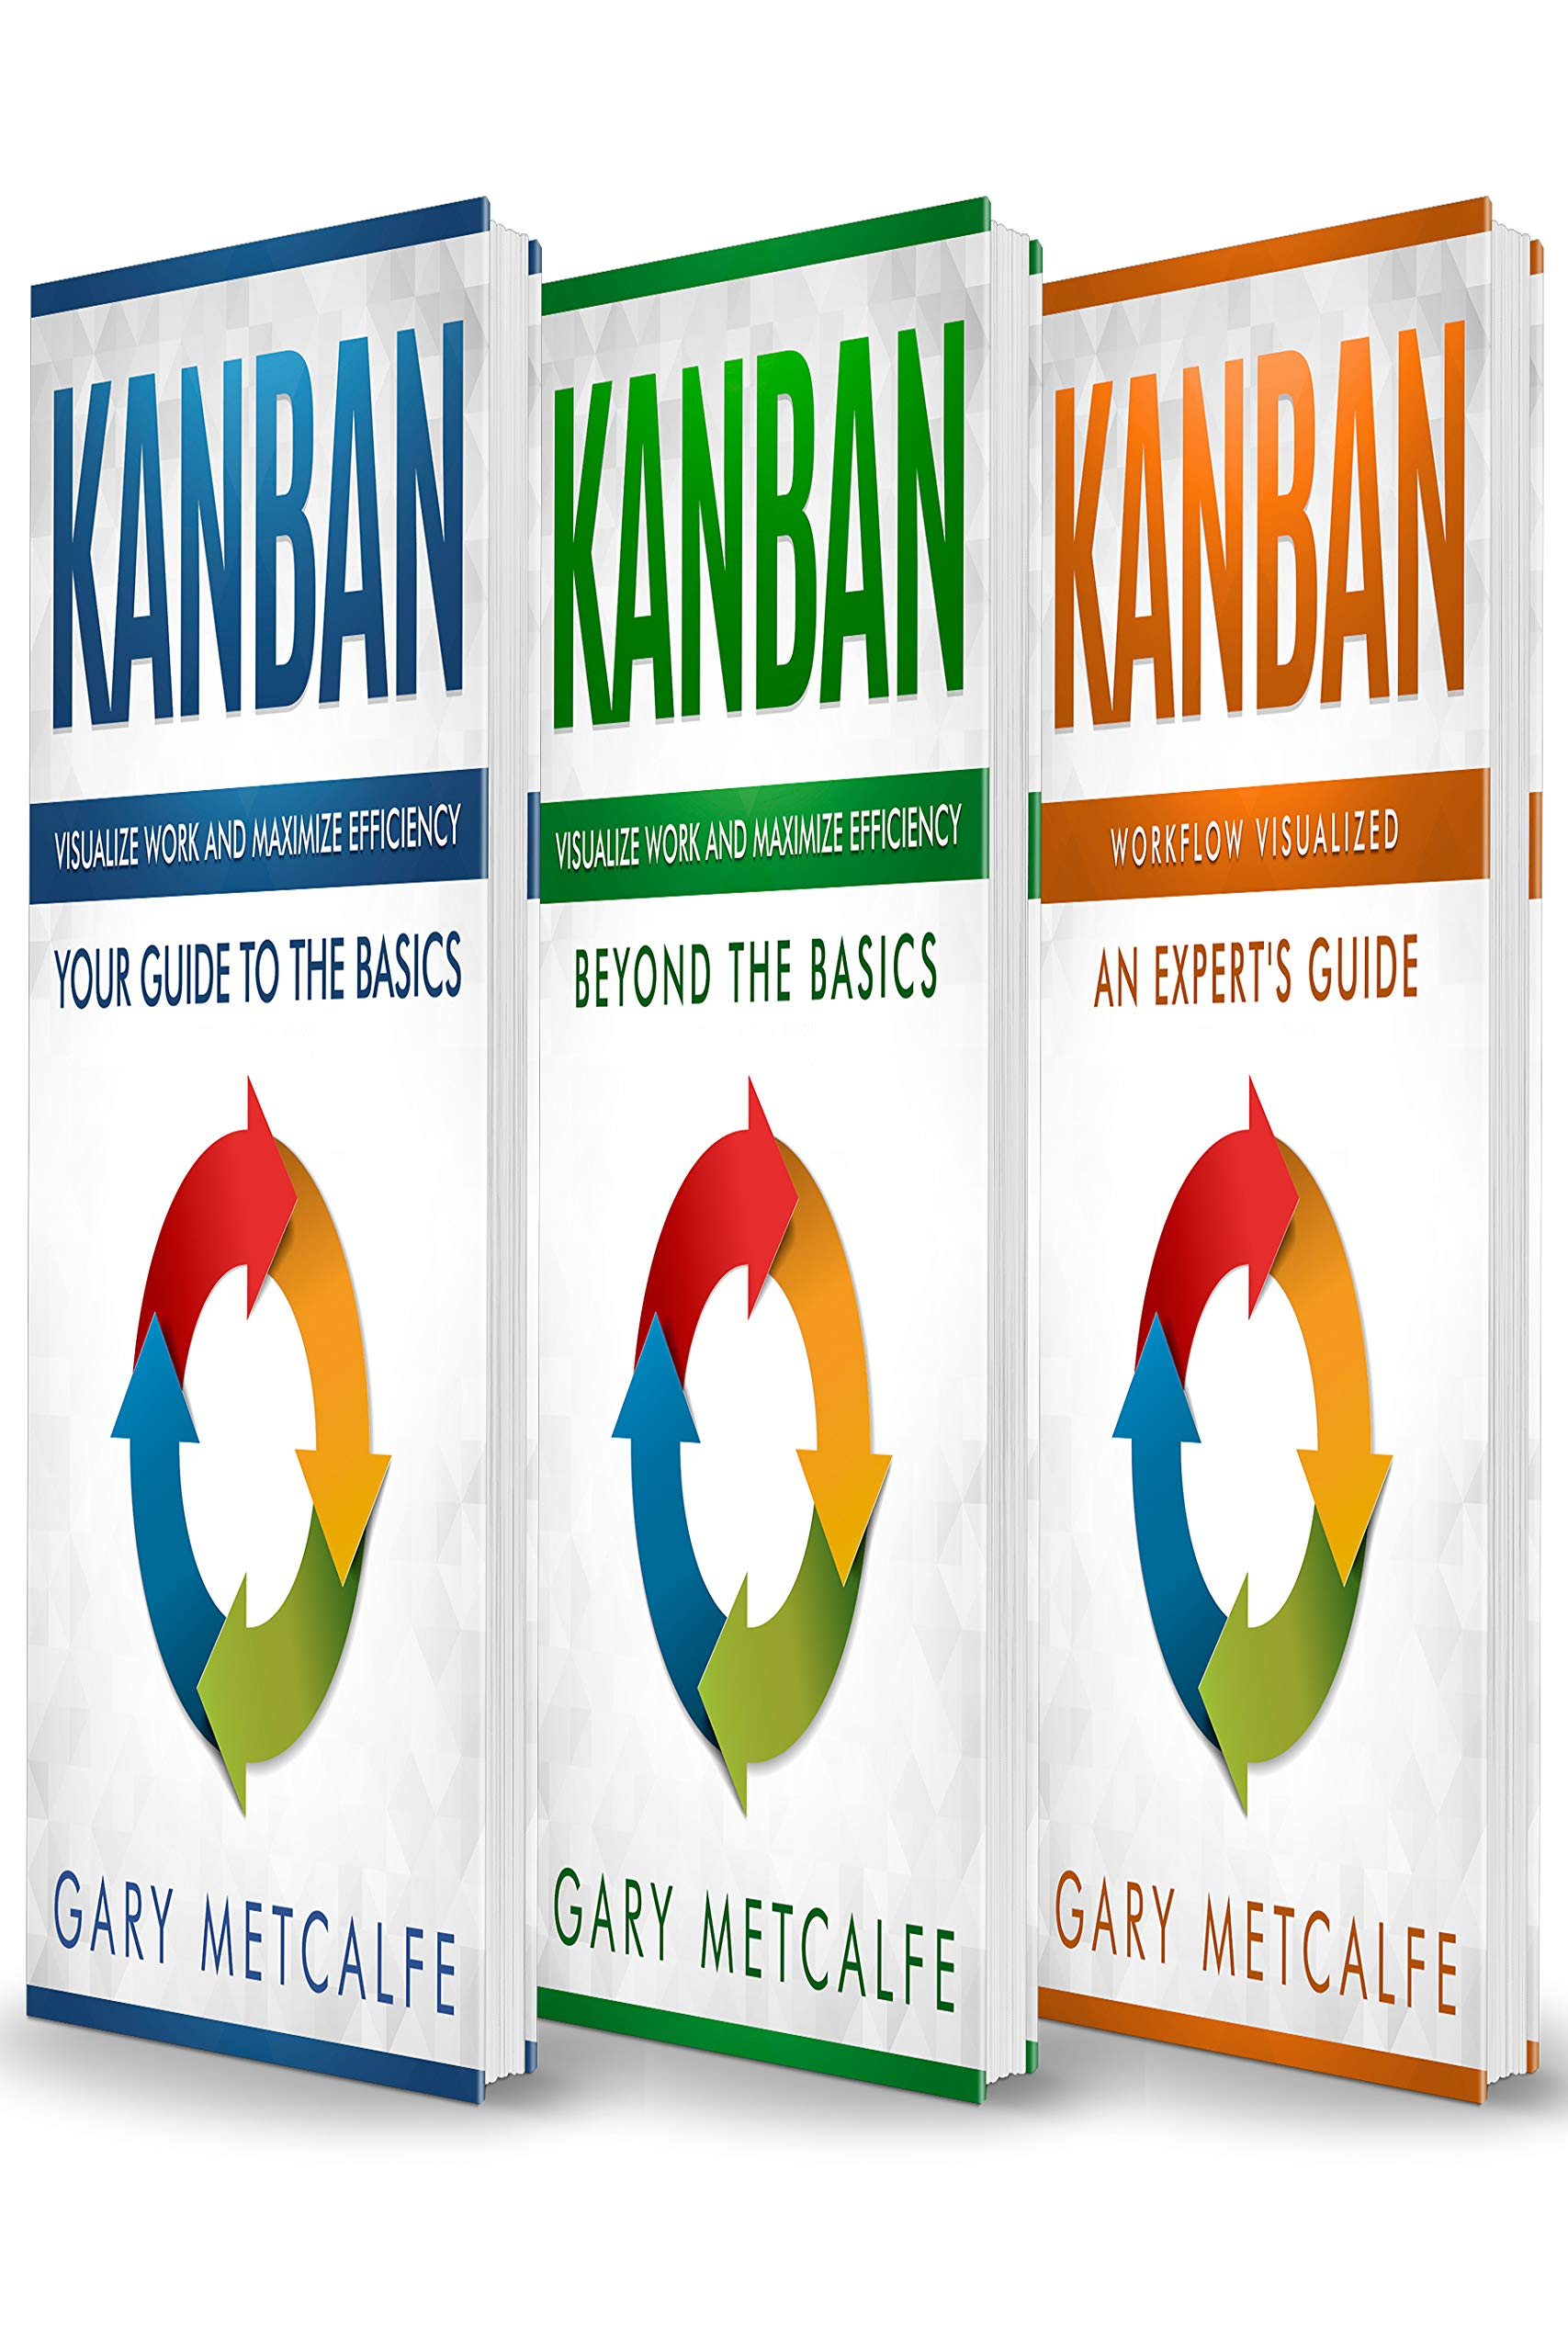 Kanban  3 Books In 1  Your Guide To The Basics+Beyond The Basics+Workflow Visualized  An Expert's Guide  English Edition